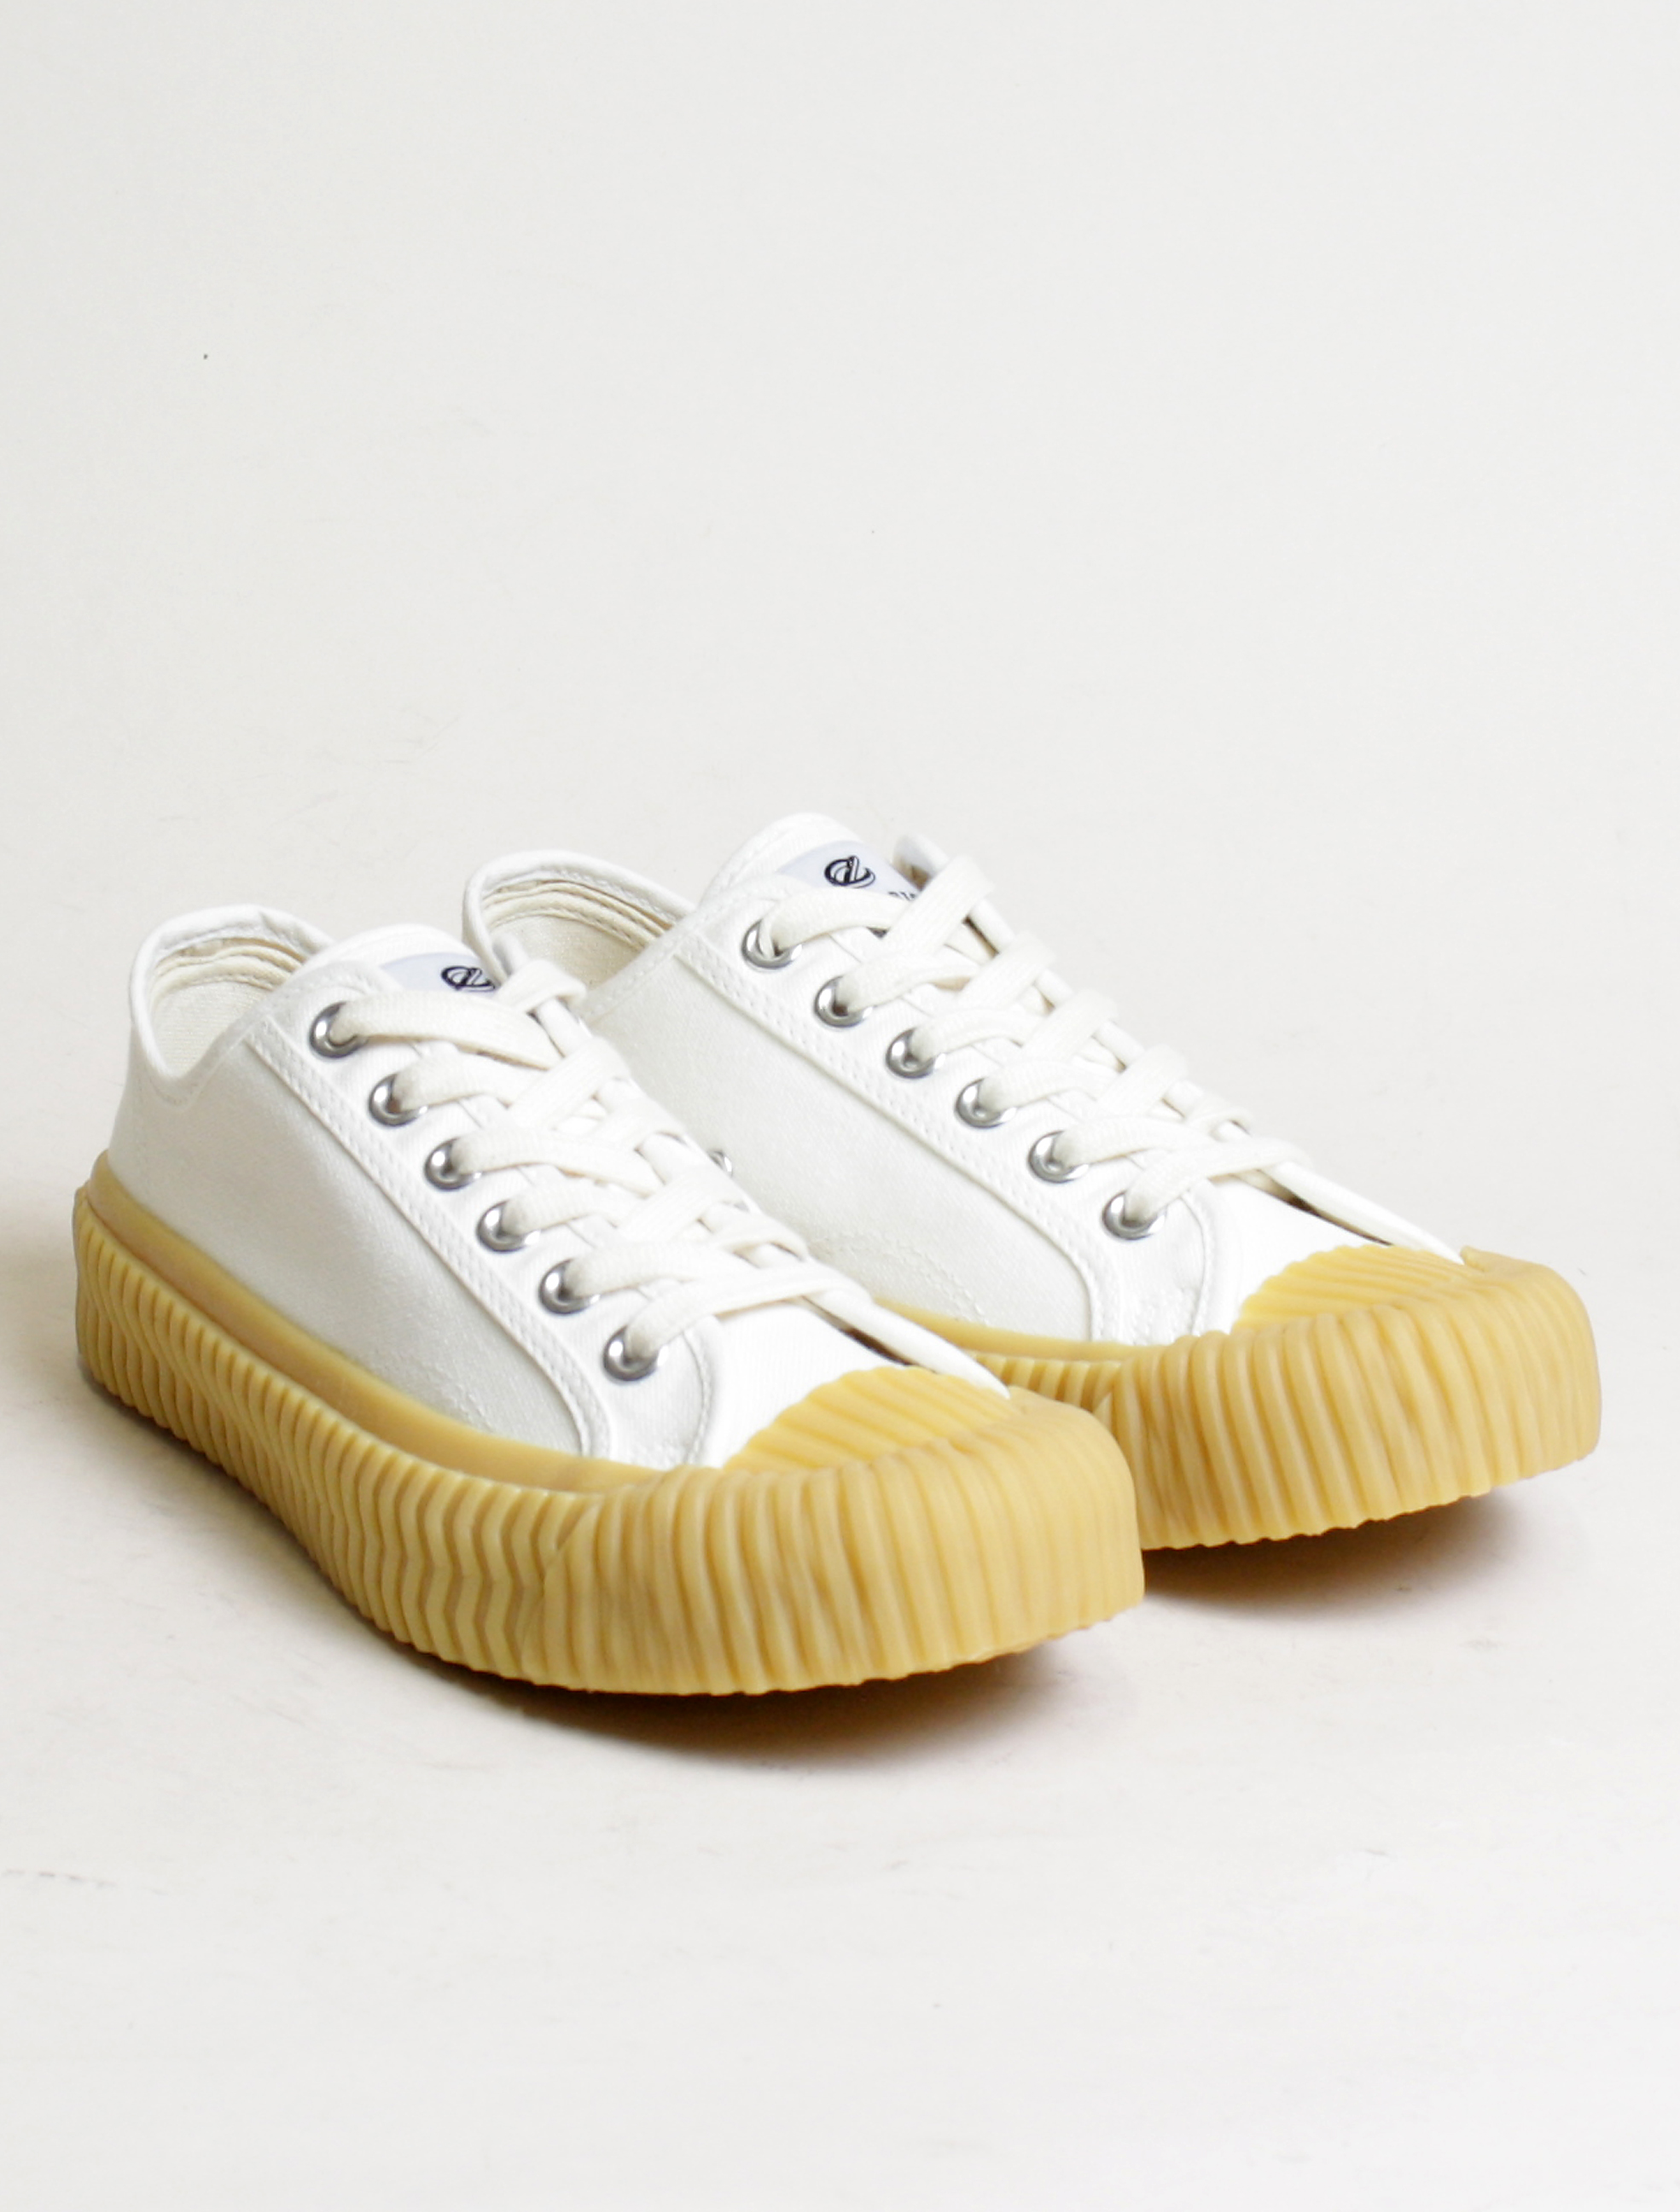 Excelsior sneakers Bolt Lo Shoes Off White rubber sole steam white paio